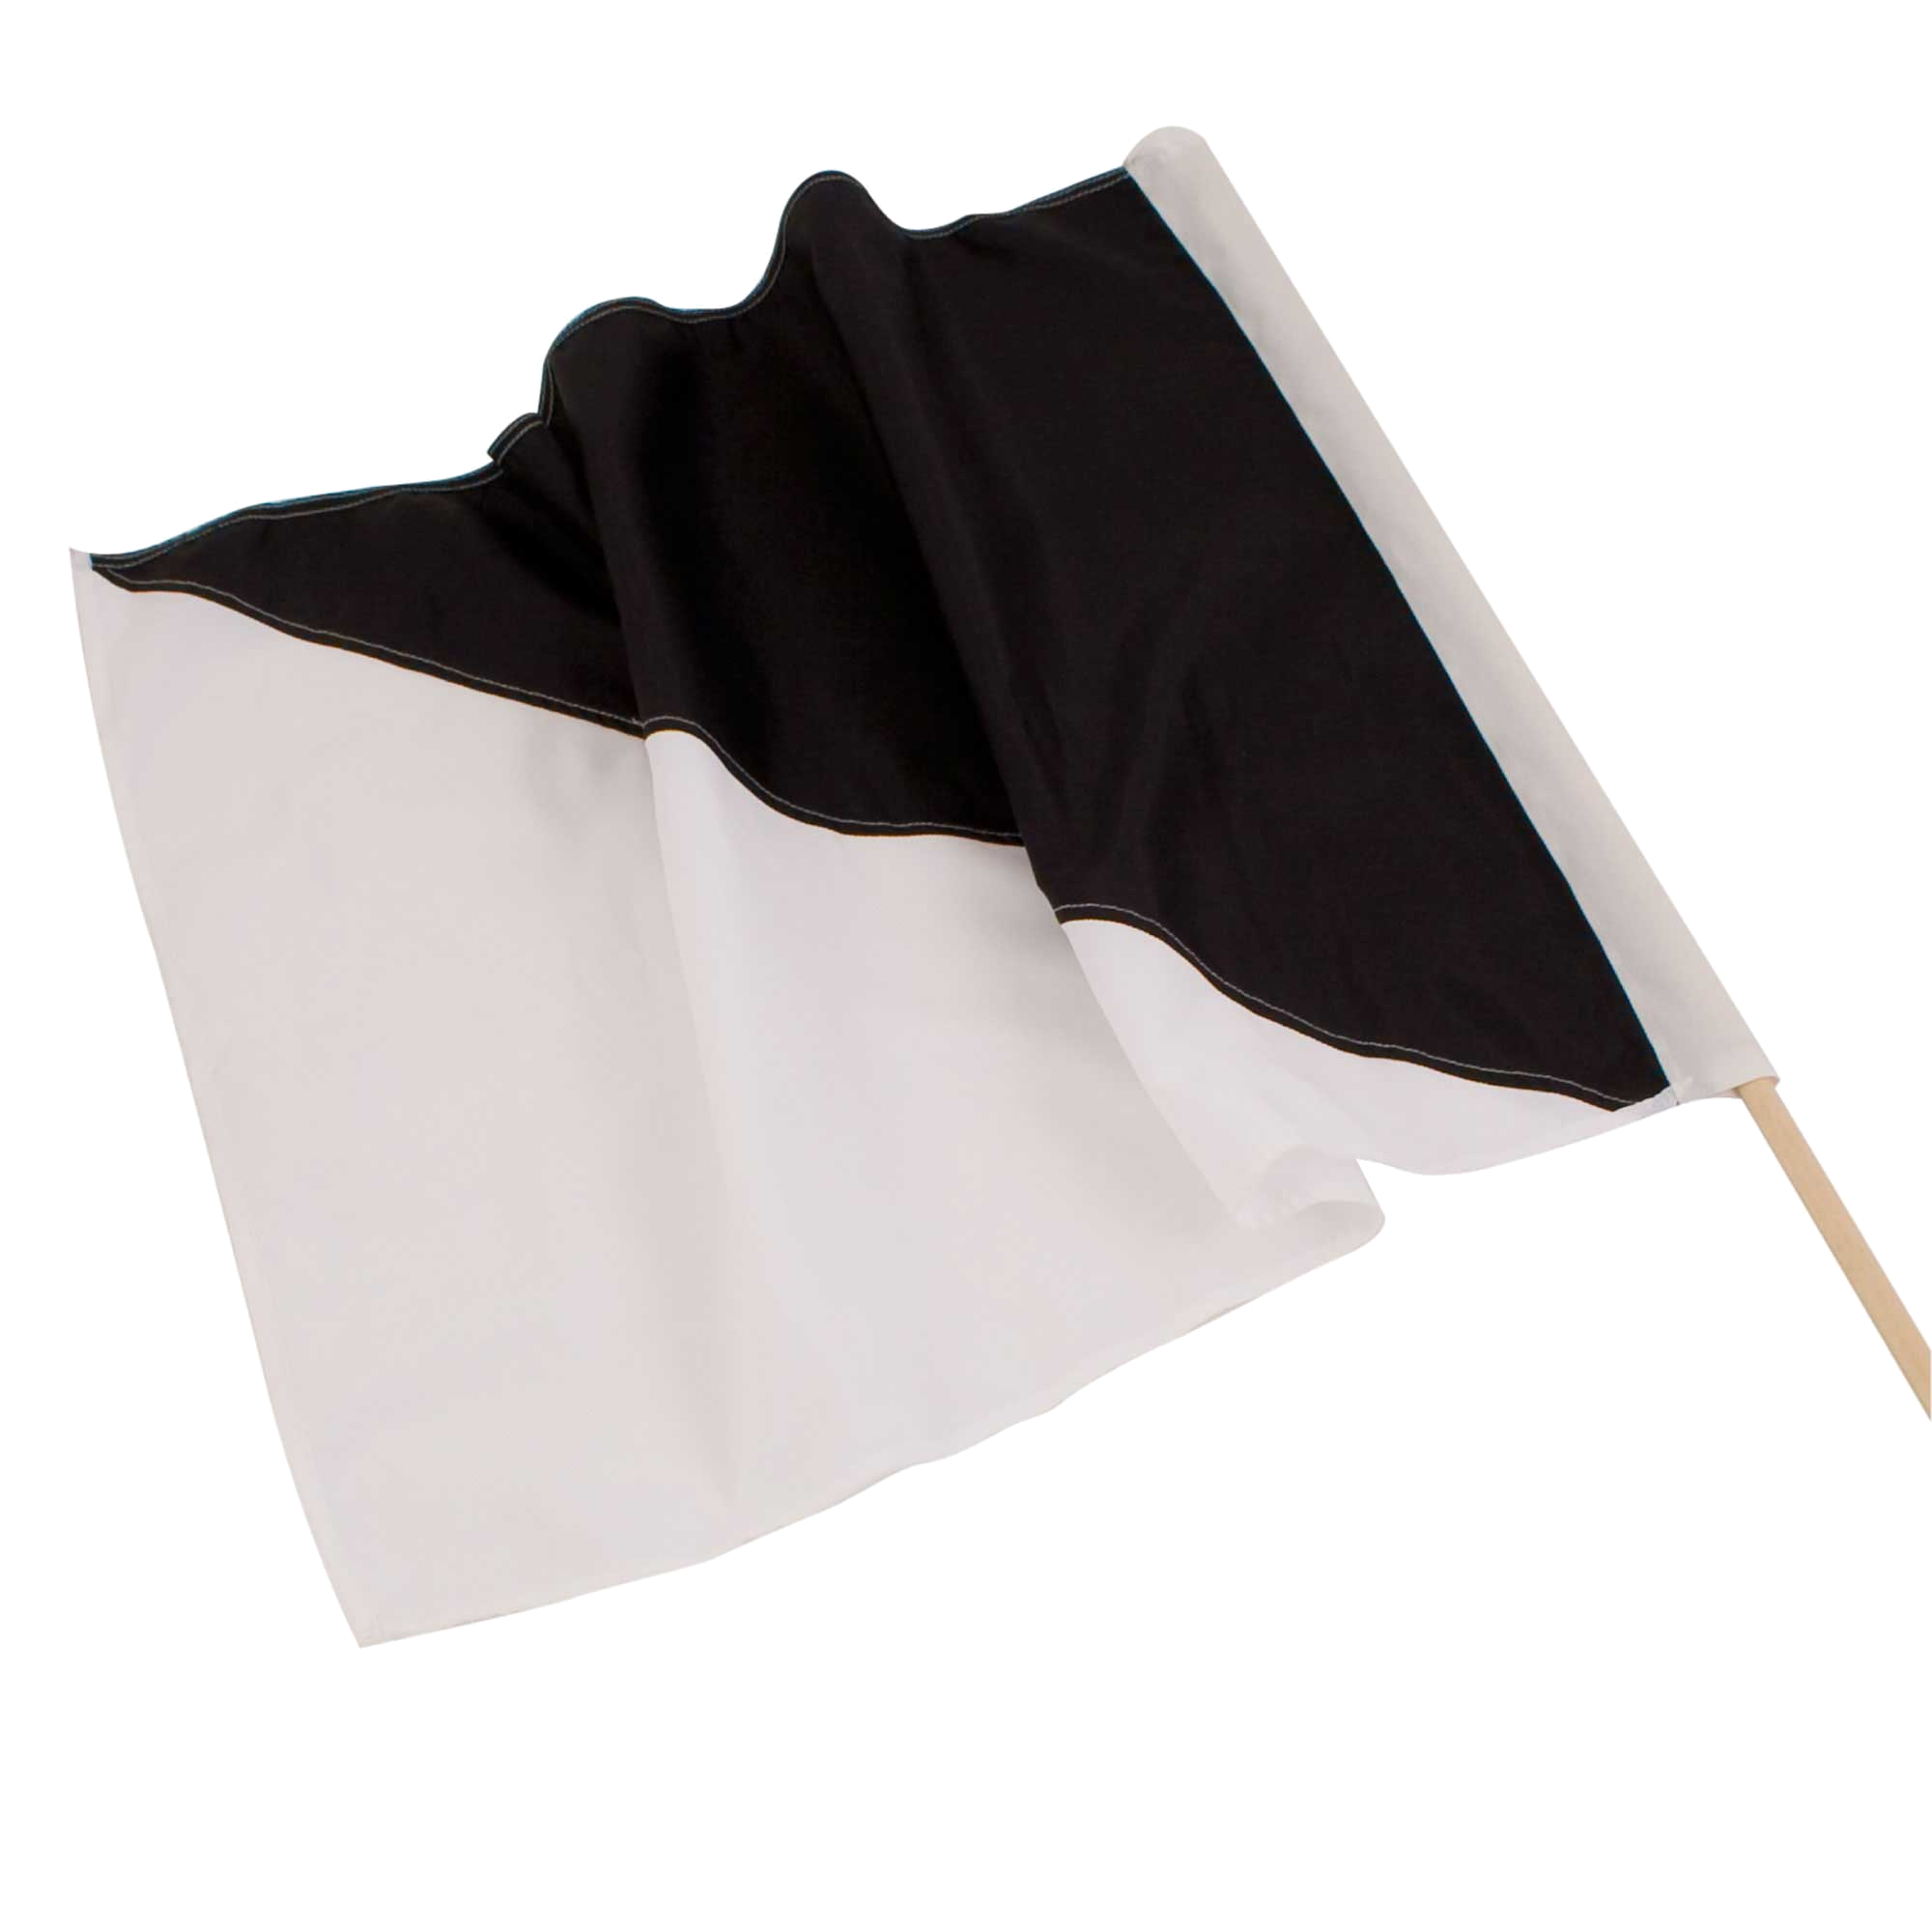 Black and white race flag